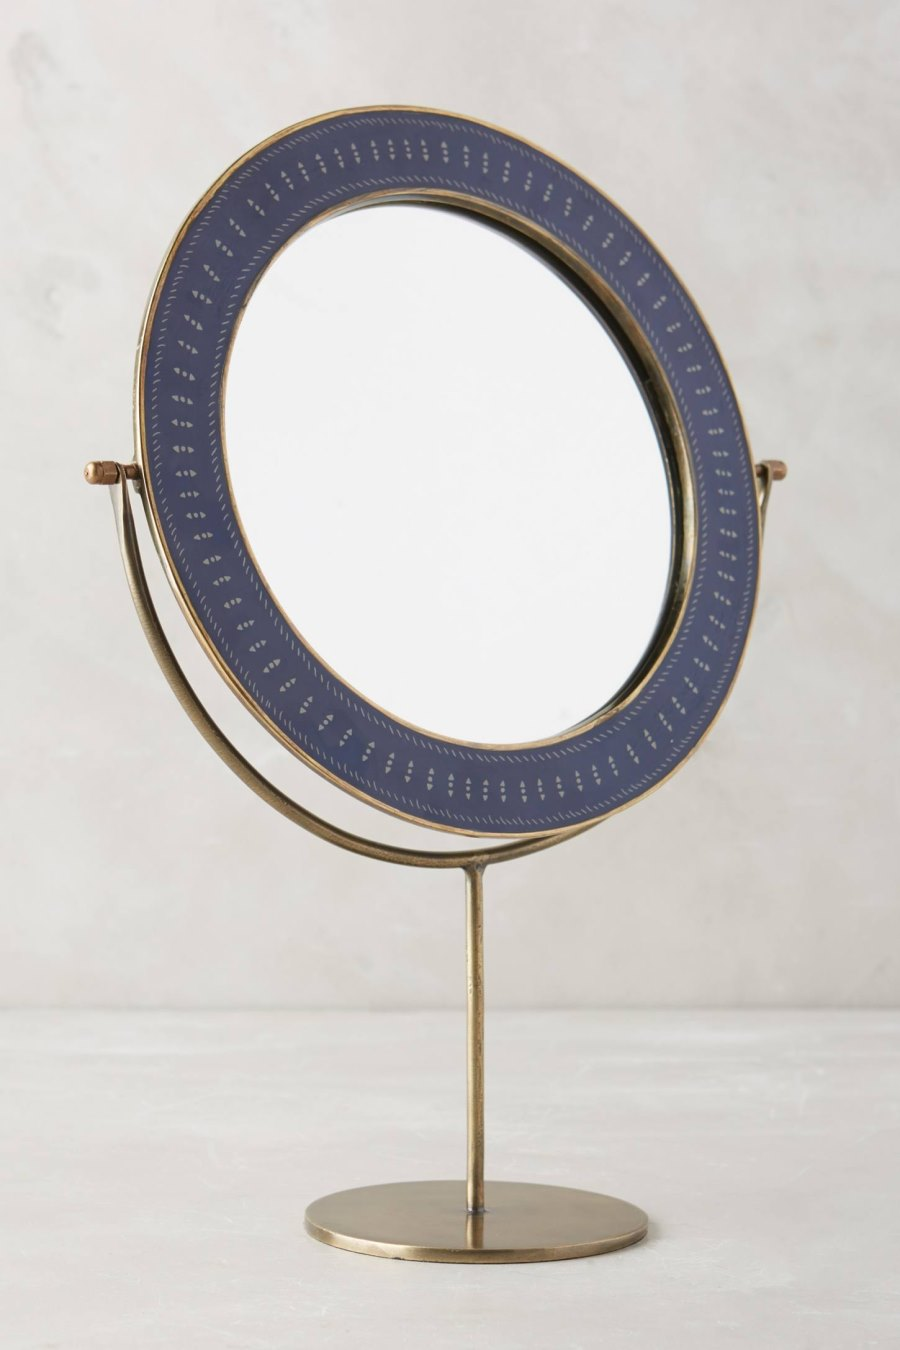 Circular mirror from Anthropologie